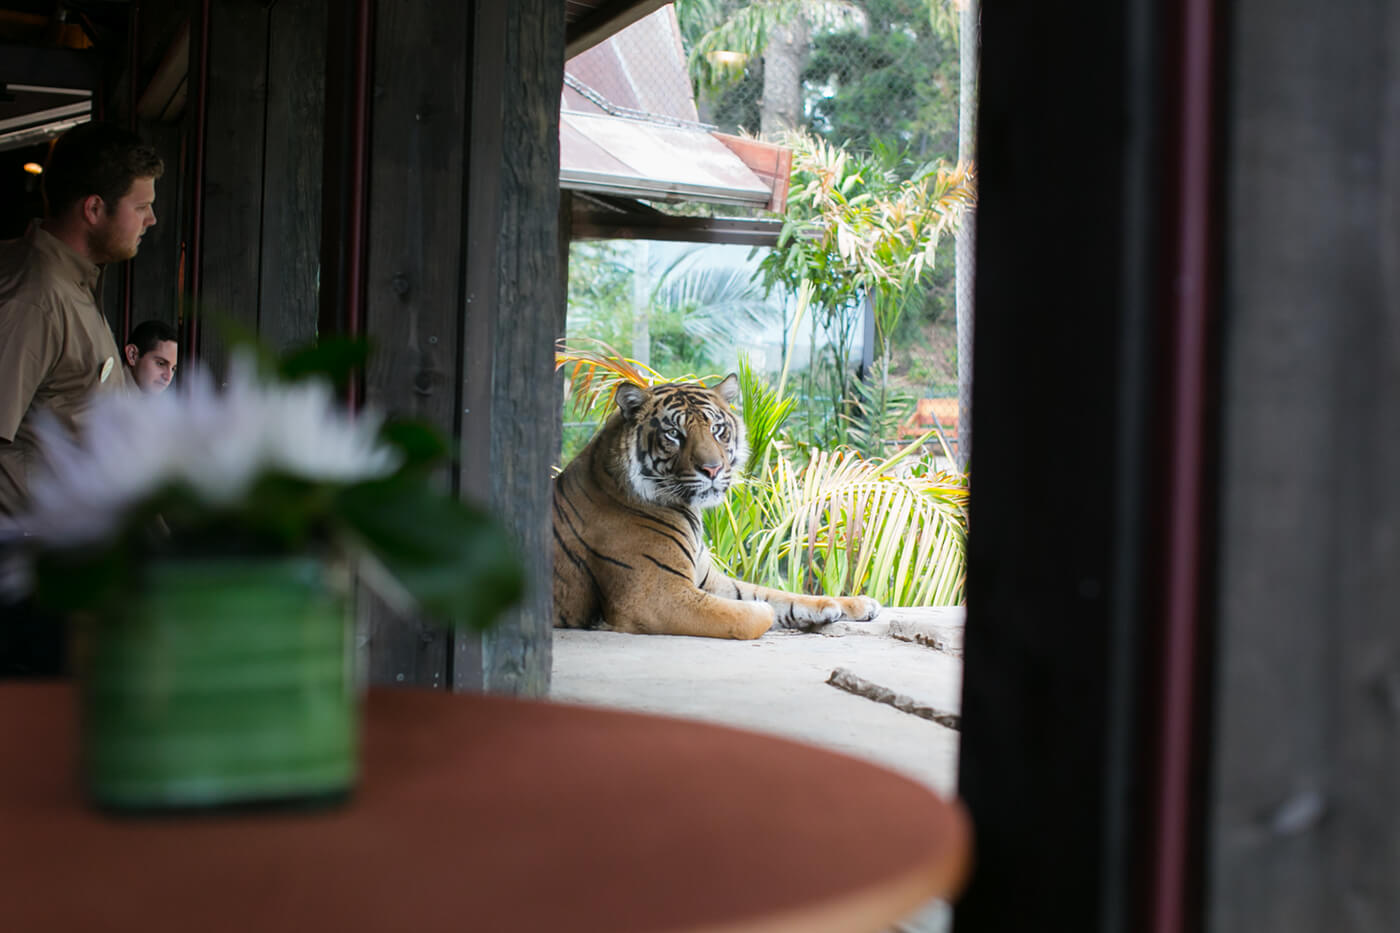 Tiger in window